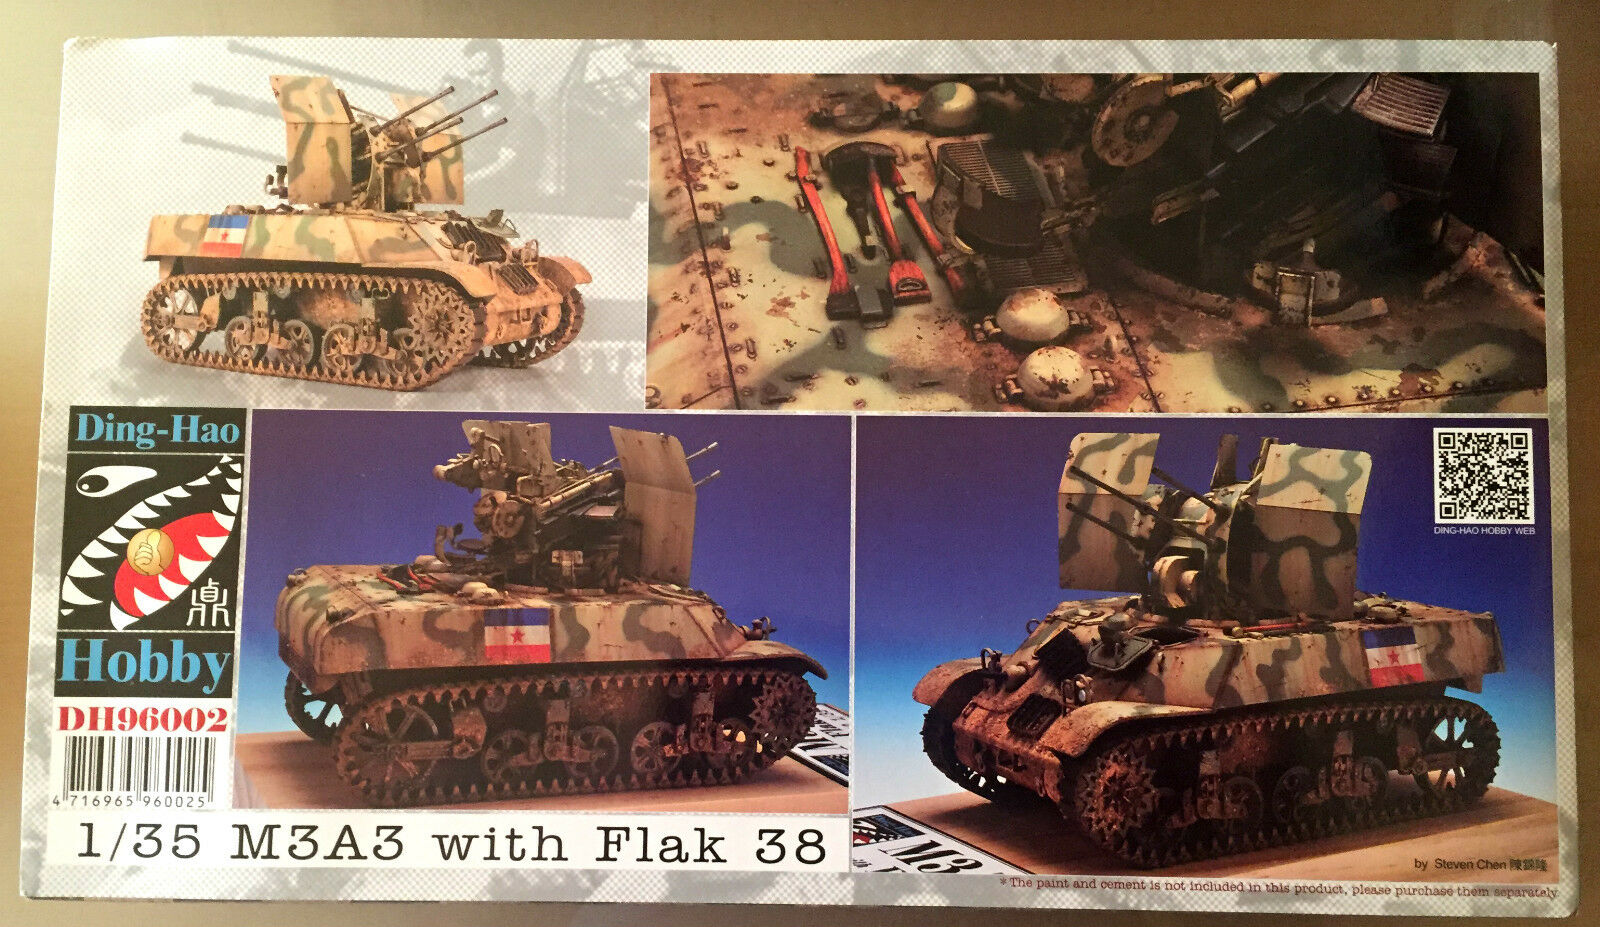 DING-HAO DING-HAO DING-HAO HOBBY DH96002 1/35 M3A3   FLAK 38 NUOVO   Outlet Online Store  782672